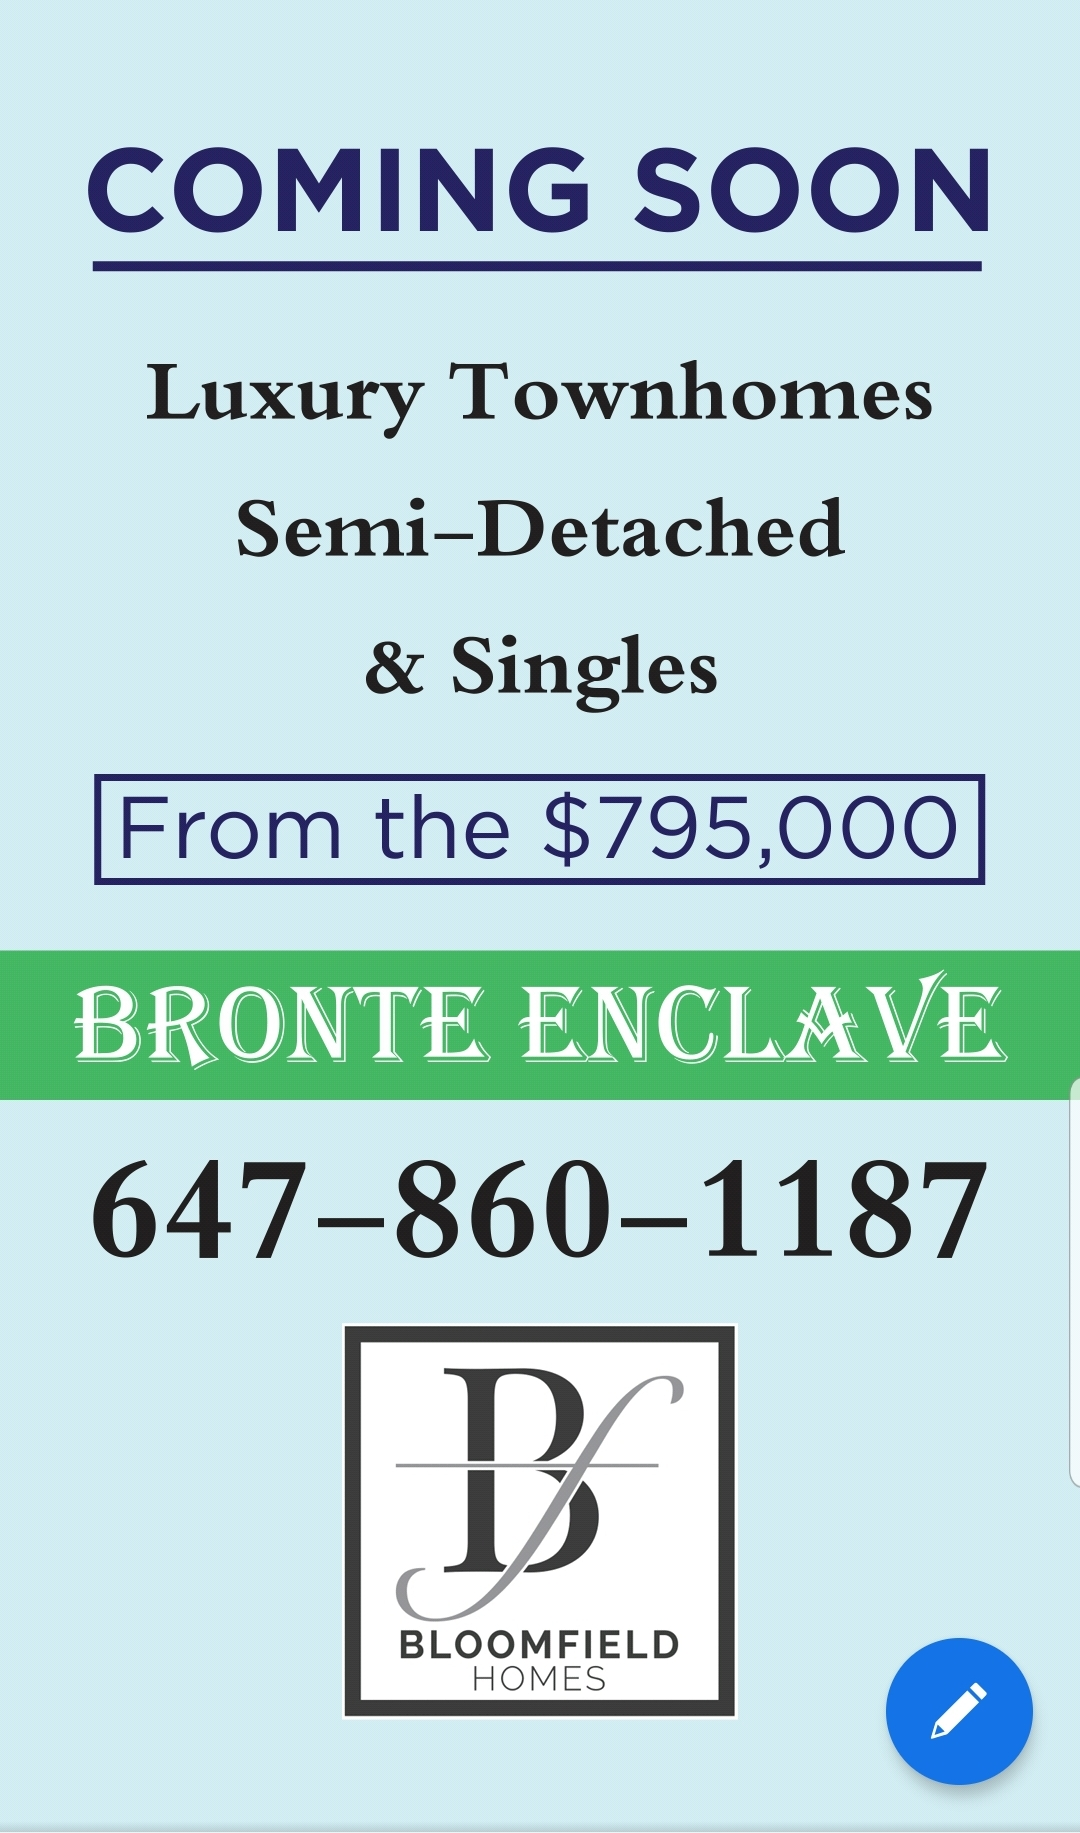 Bronte Enclave Luxury Townhomes